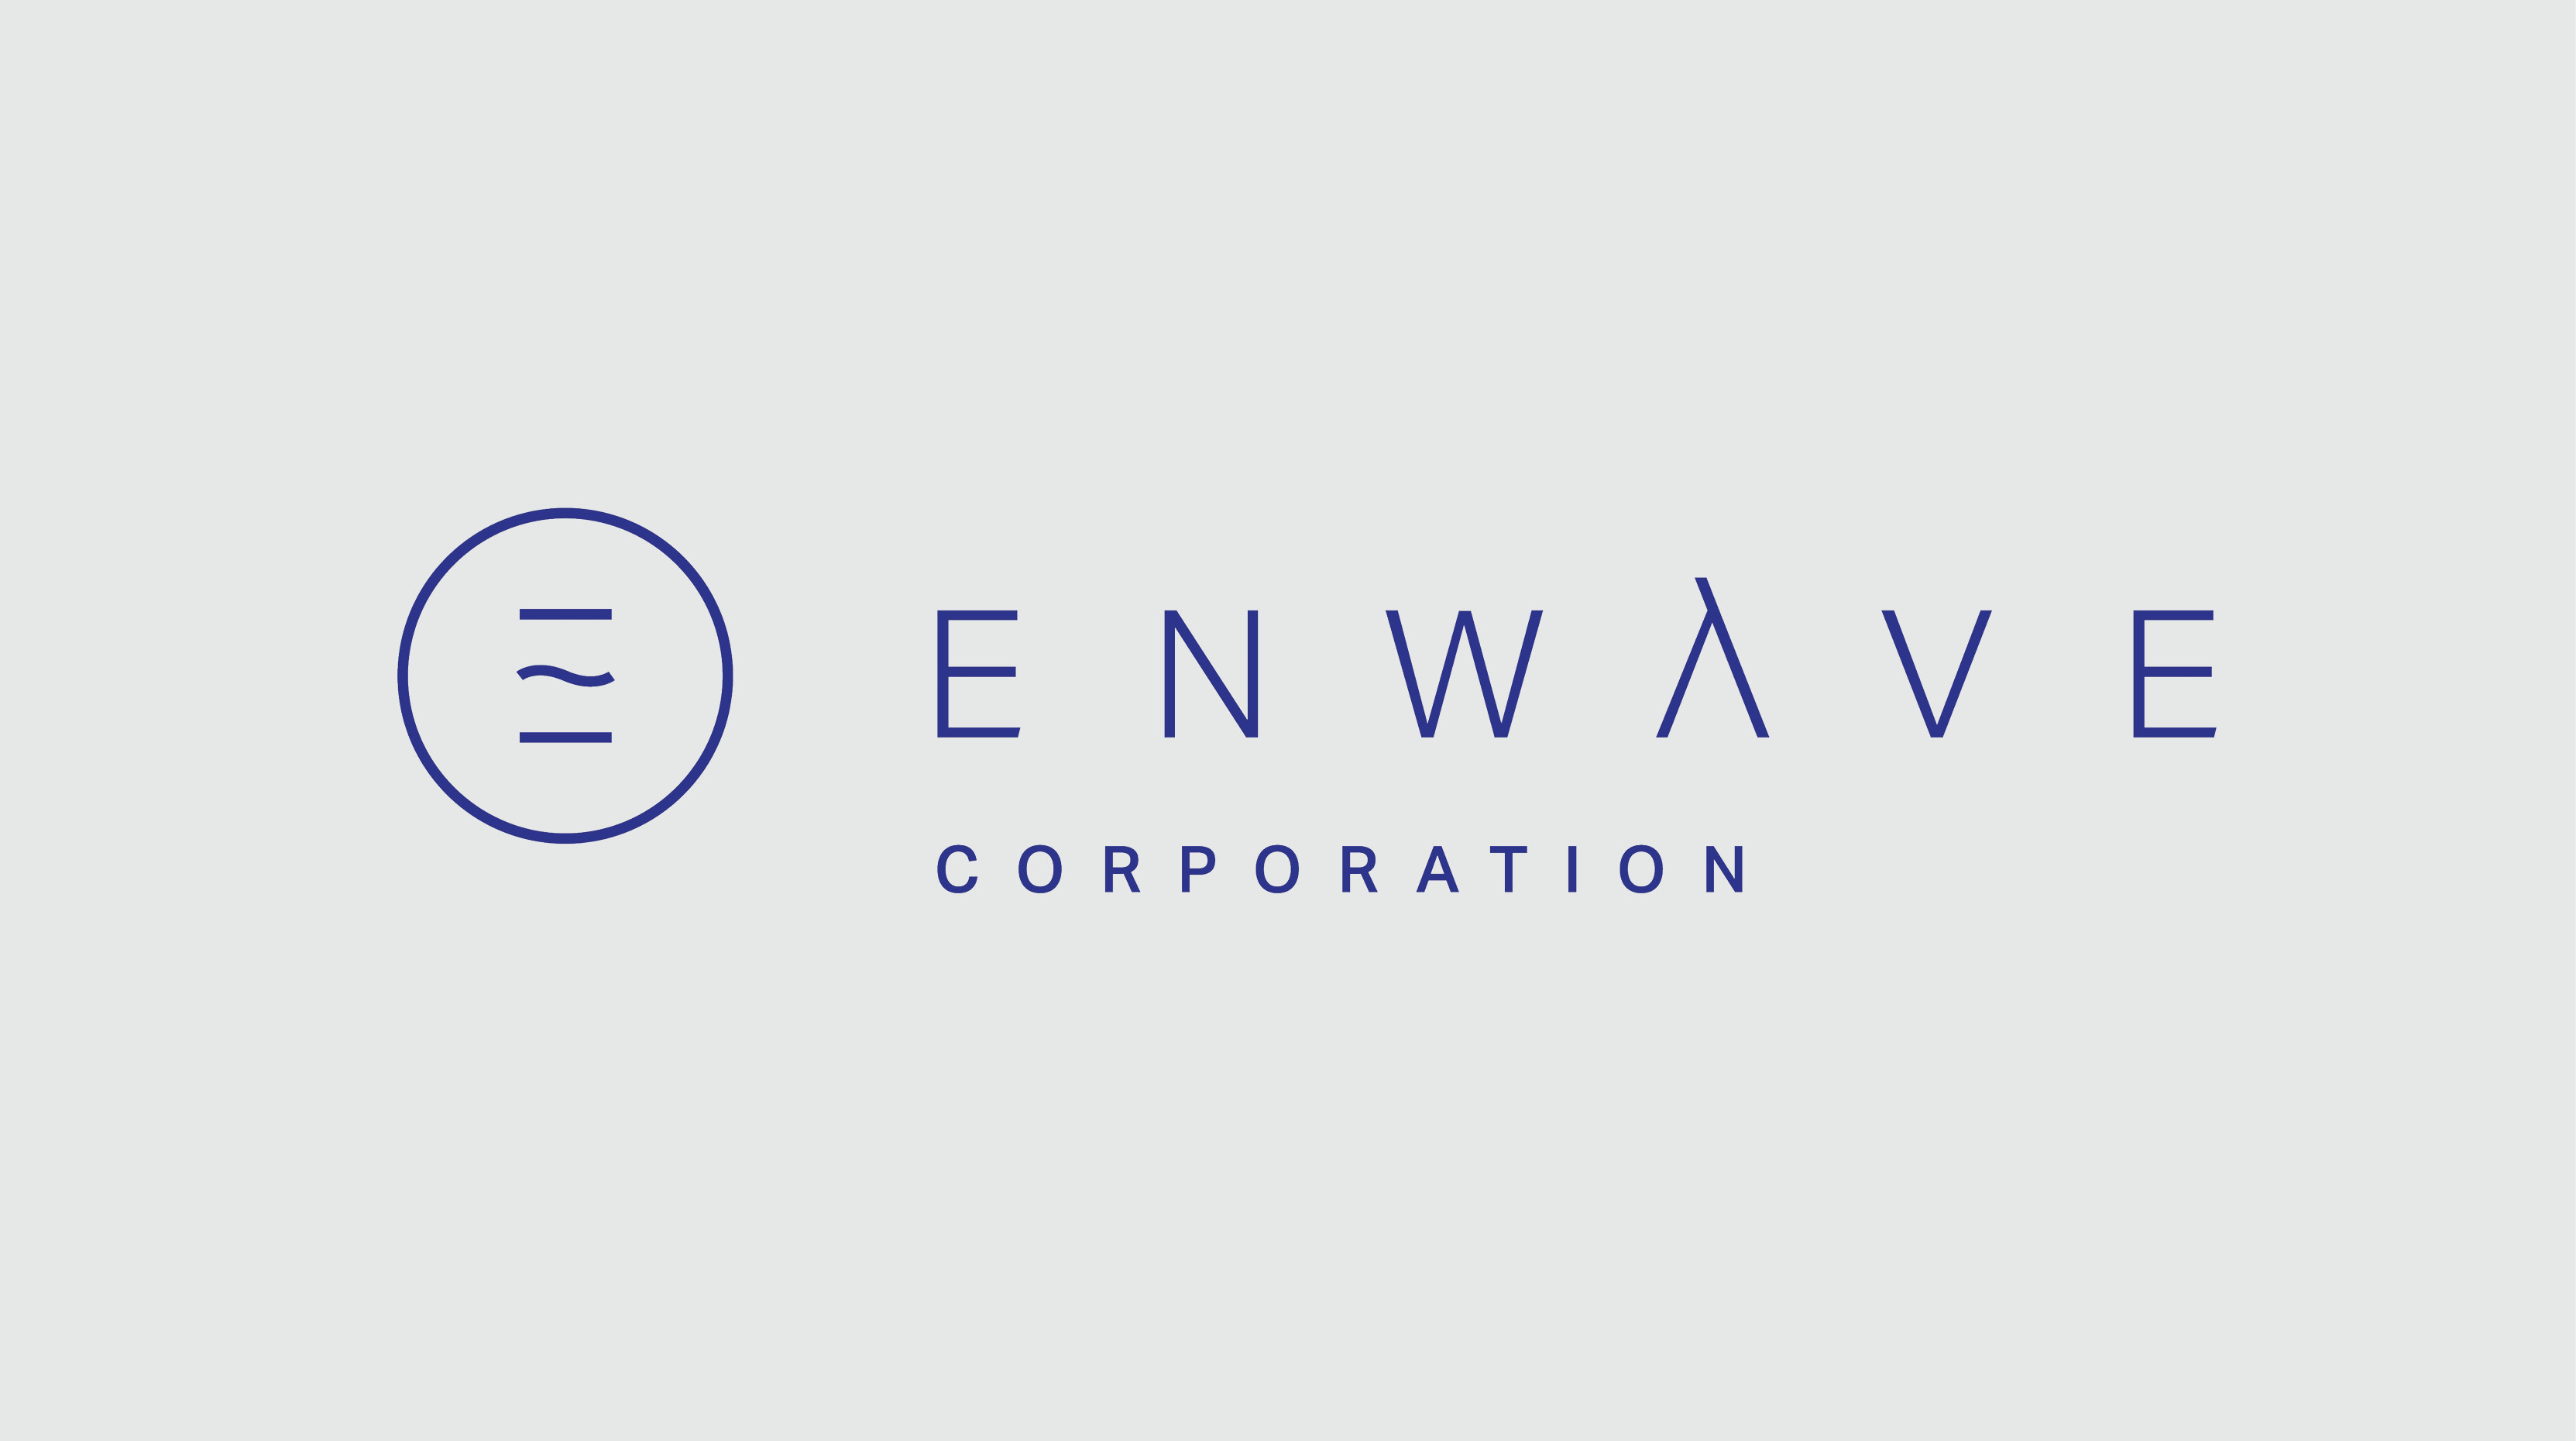 EnWave Signs Royalty-Bearing Commercial License Agreementand Equipment Purchase Agreement with Nippon Trends Food Services, Inc.